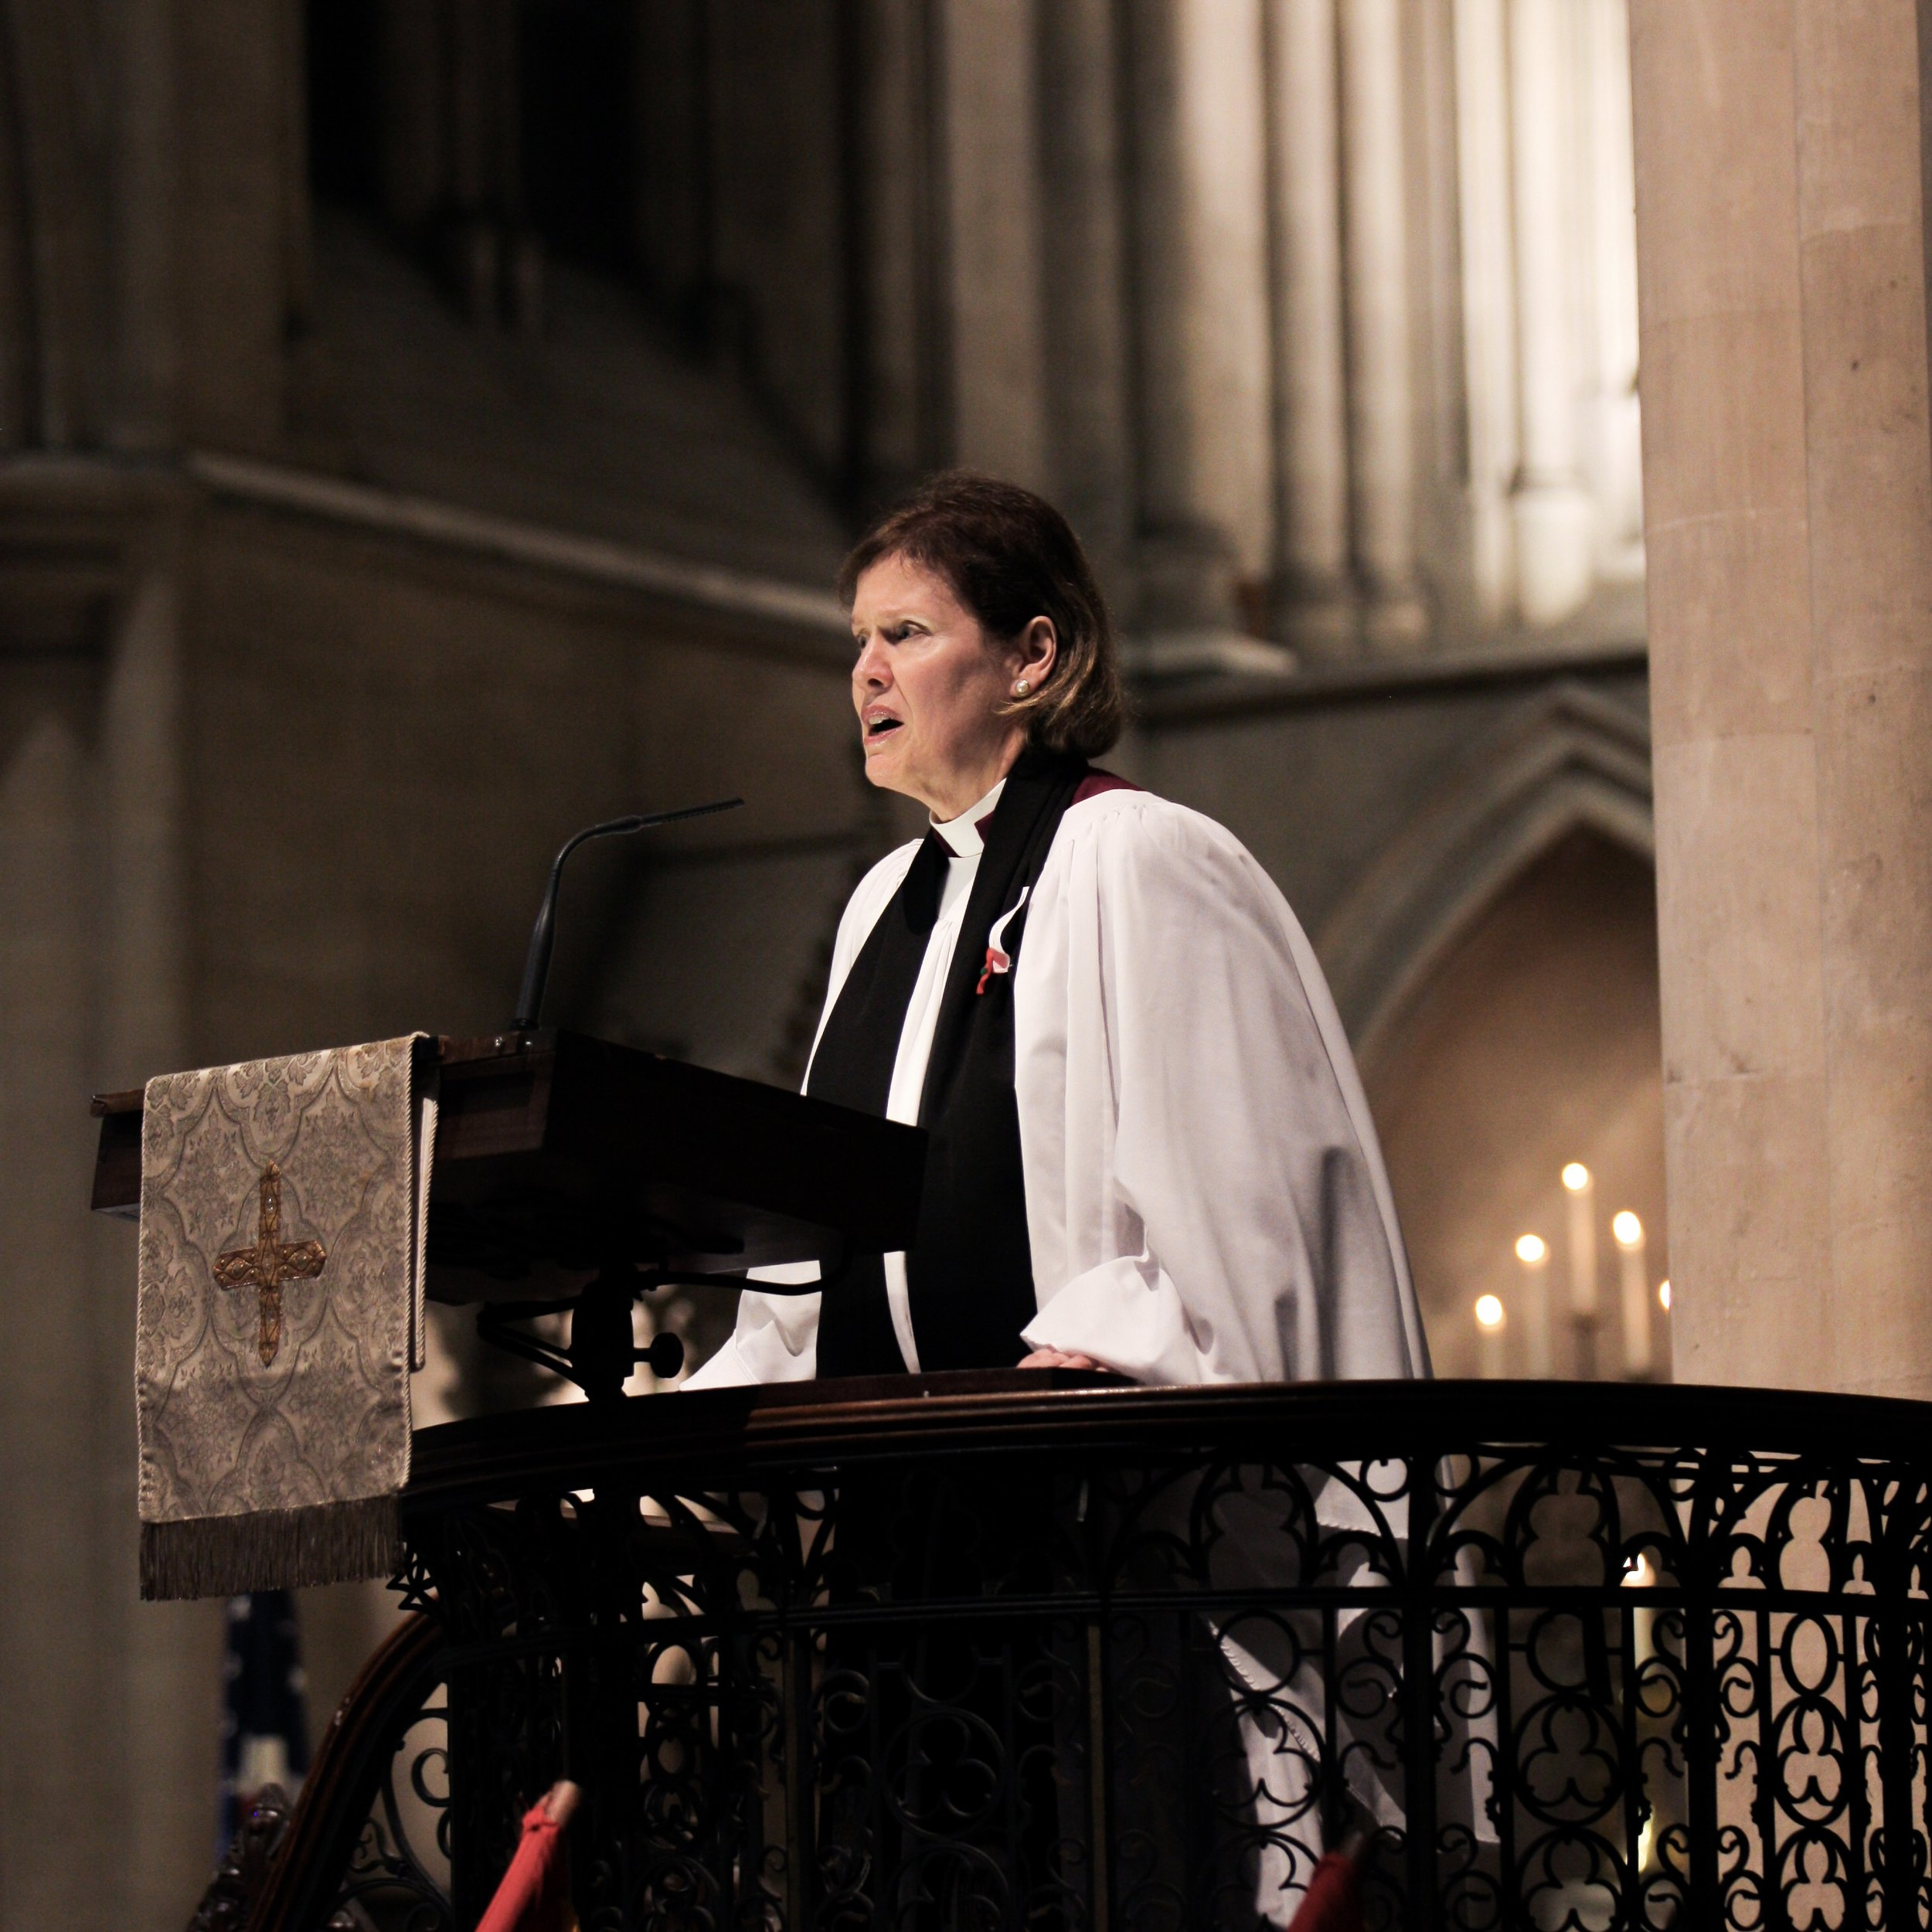 Cathedral Dean & Rector, The Very Rev. Lucinda Laird